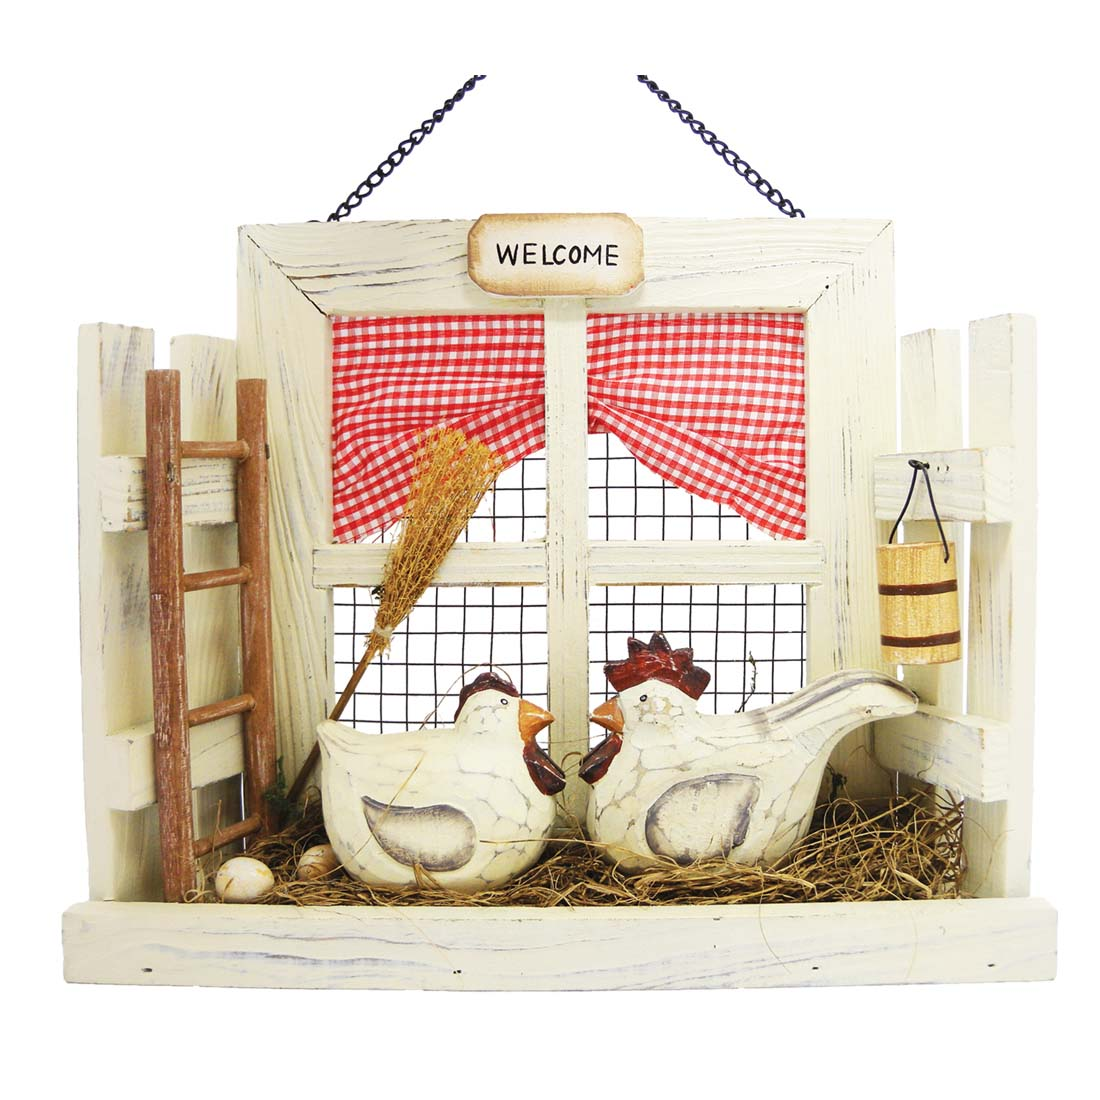 "View HANGING WALL WELCOME DECO HEN AND ROOSTER SCENE 11.5"" X9.5 TALL"""